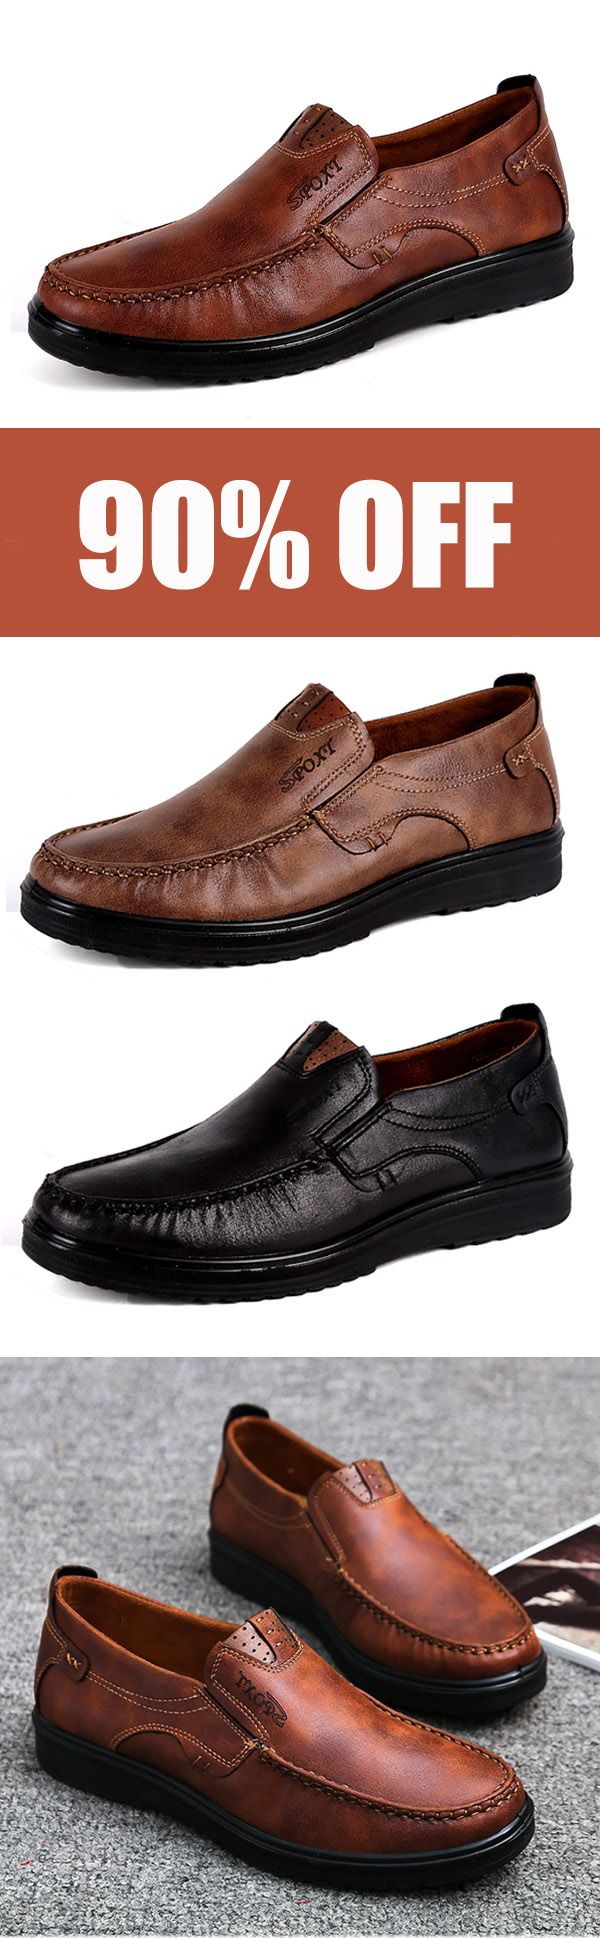 Large Size Men Comfy Casual Microfiber Leather Oxfords Shoes. #mens #fashion